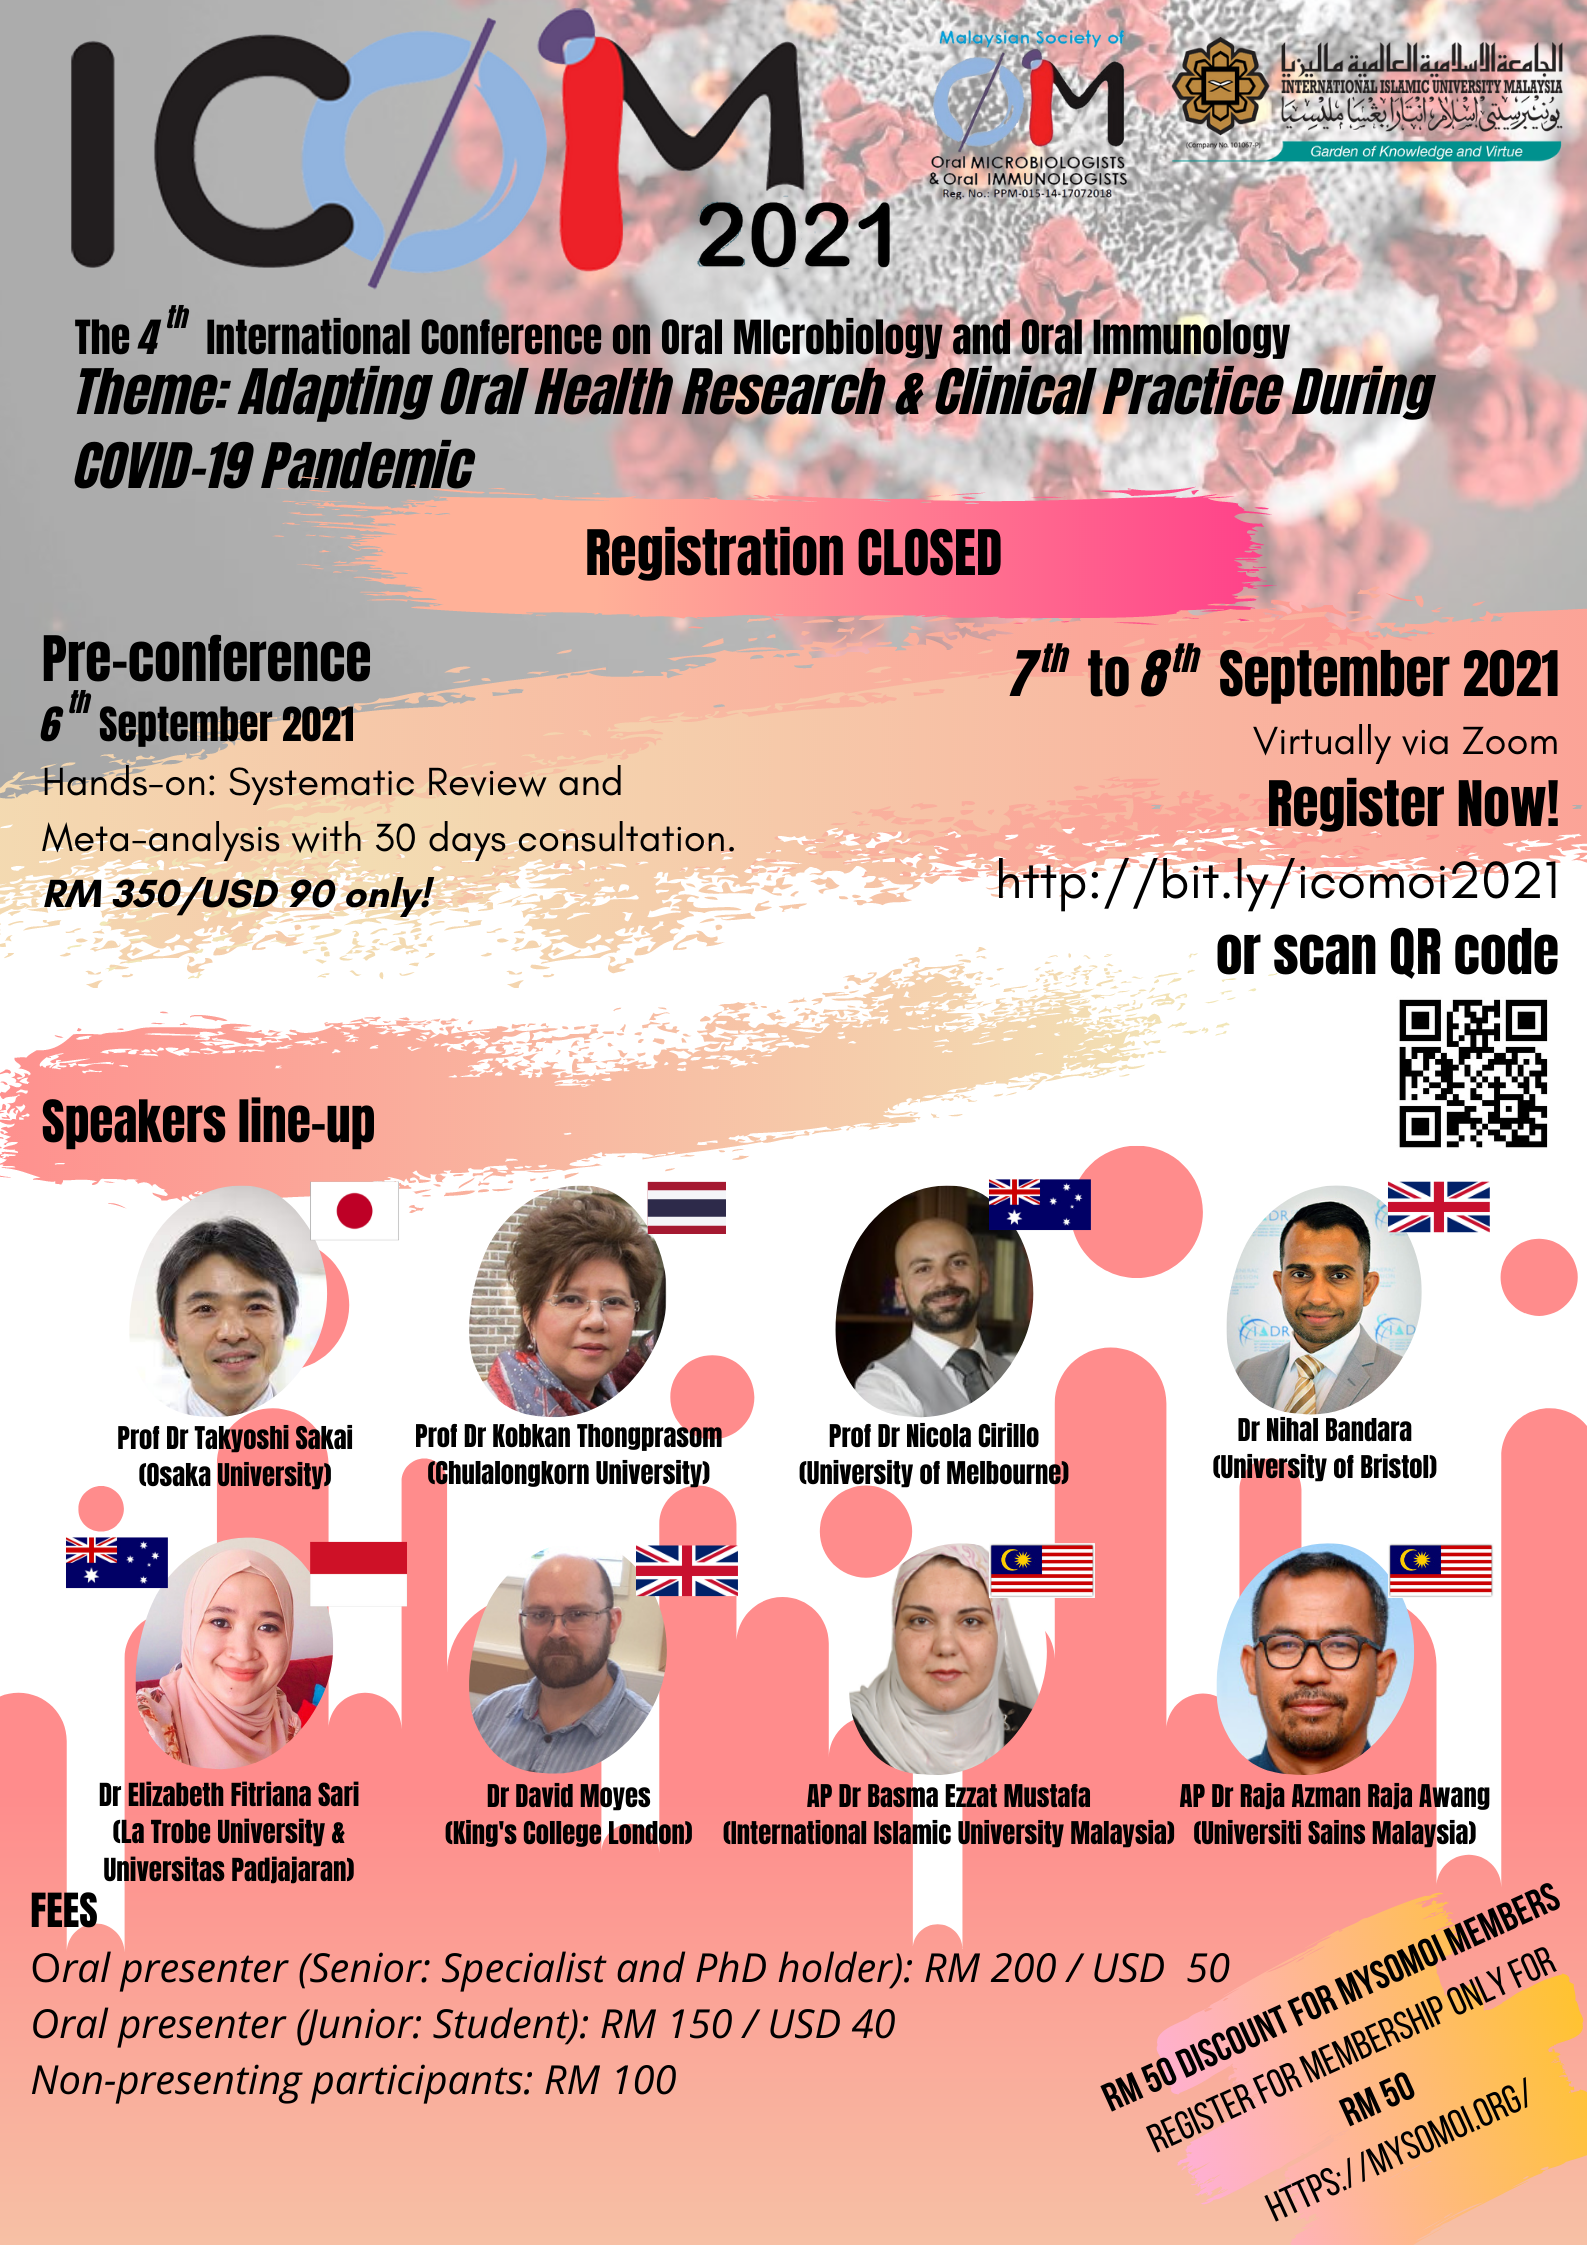 4th International Conference on Oral Microbiology and Oral Immunology